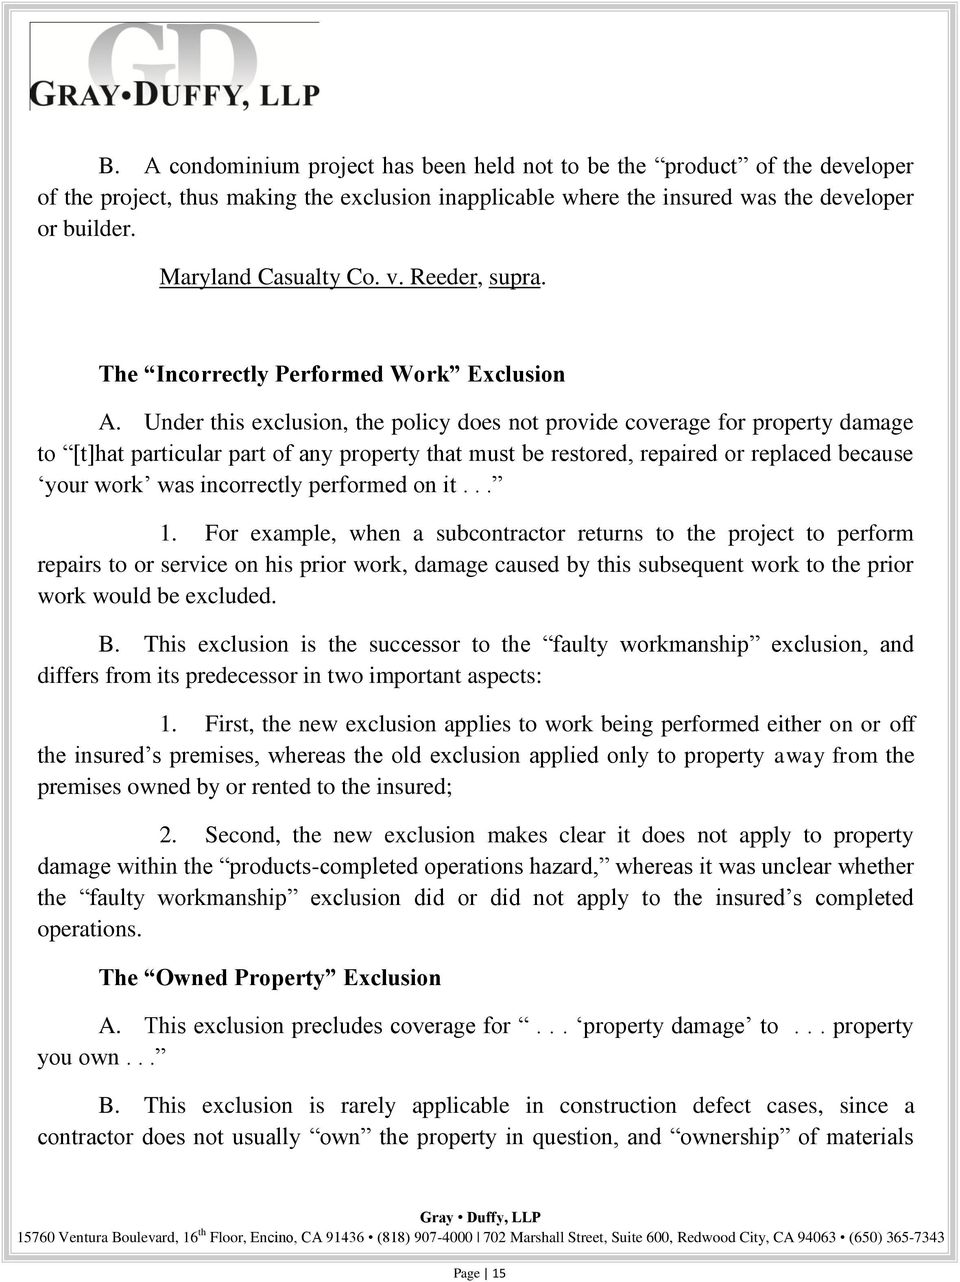 Under this exclusion, the policy does not provide coverage for property damage to [t]hat particular part of any property that must be restored, repaired or replaced because your work was incorrectly